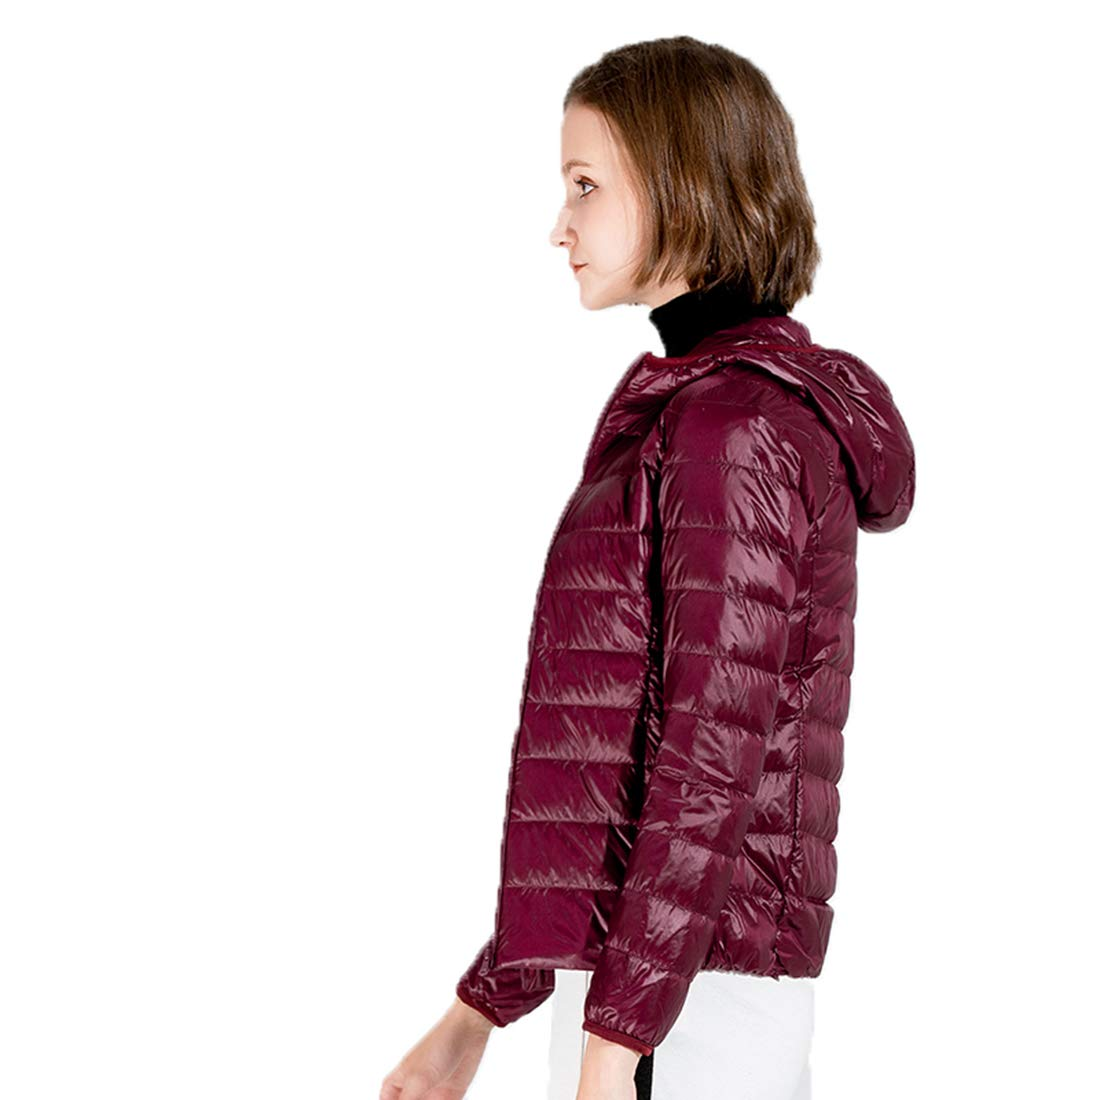 Moocare Girls Hooded Ultra Thin Light Weight Down Jacket Short Packable Slim Down Coat